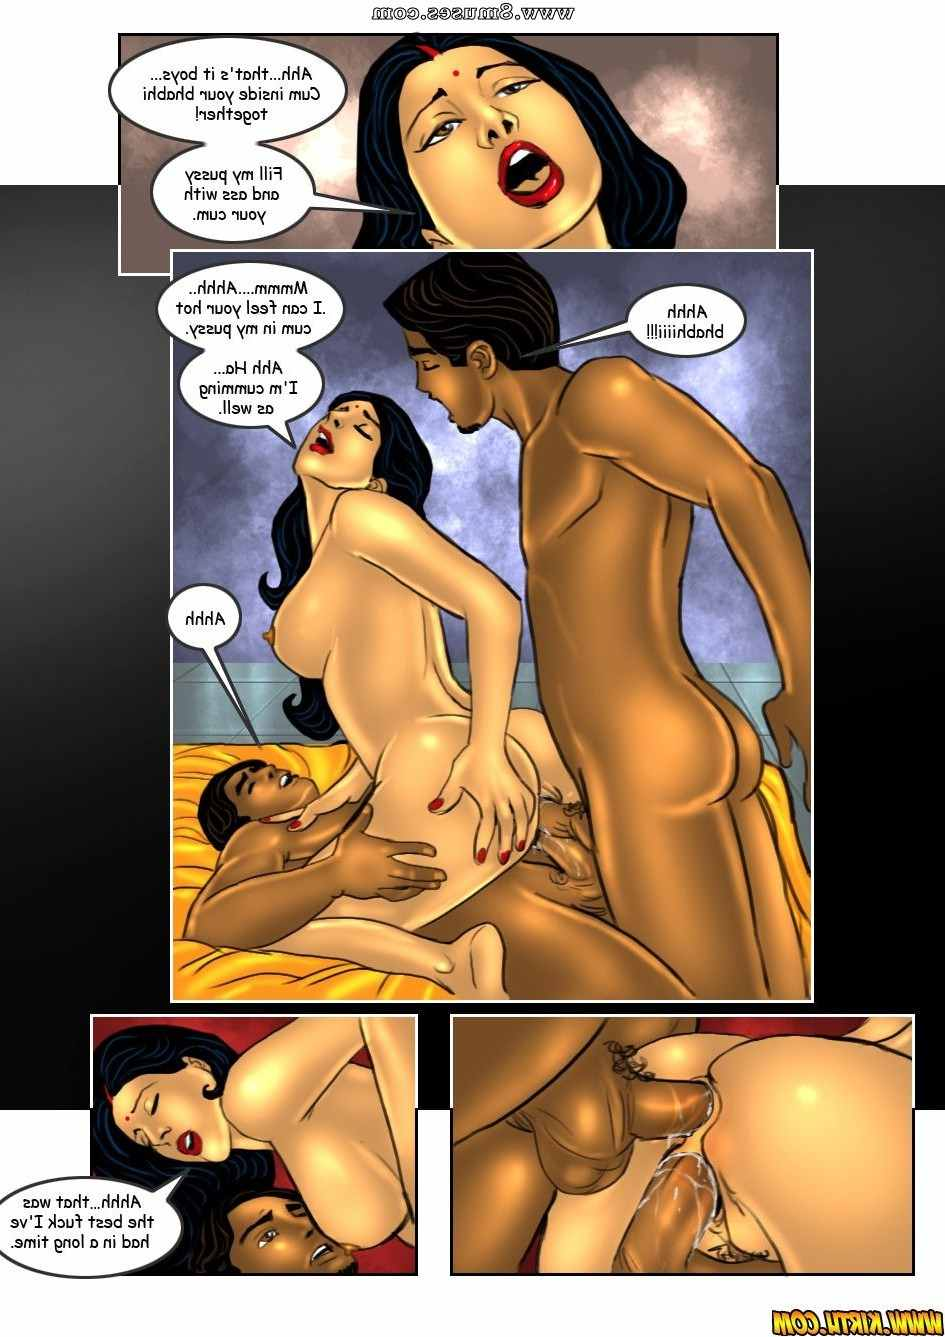 Kirtu_com-Comics/Savita-Bhabhi/Savita-Bhabhi-Episode-17-Double-Trouble-Part-2 Savita_Bhabhi_-_Episode_17__Double_Trouble_Part_2__8muses_-_Sex_and_Porn_Comics_38.jpg